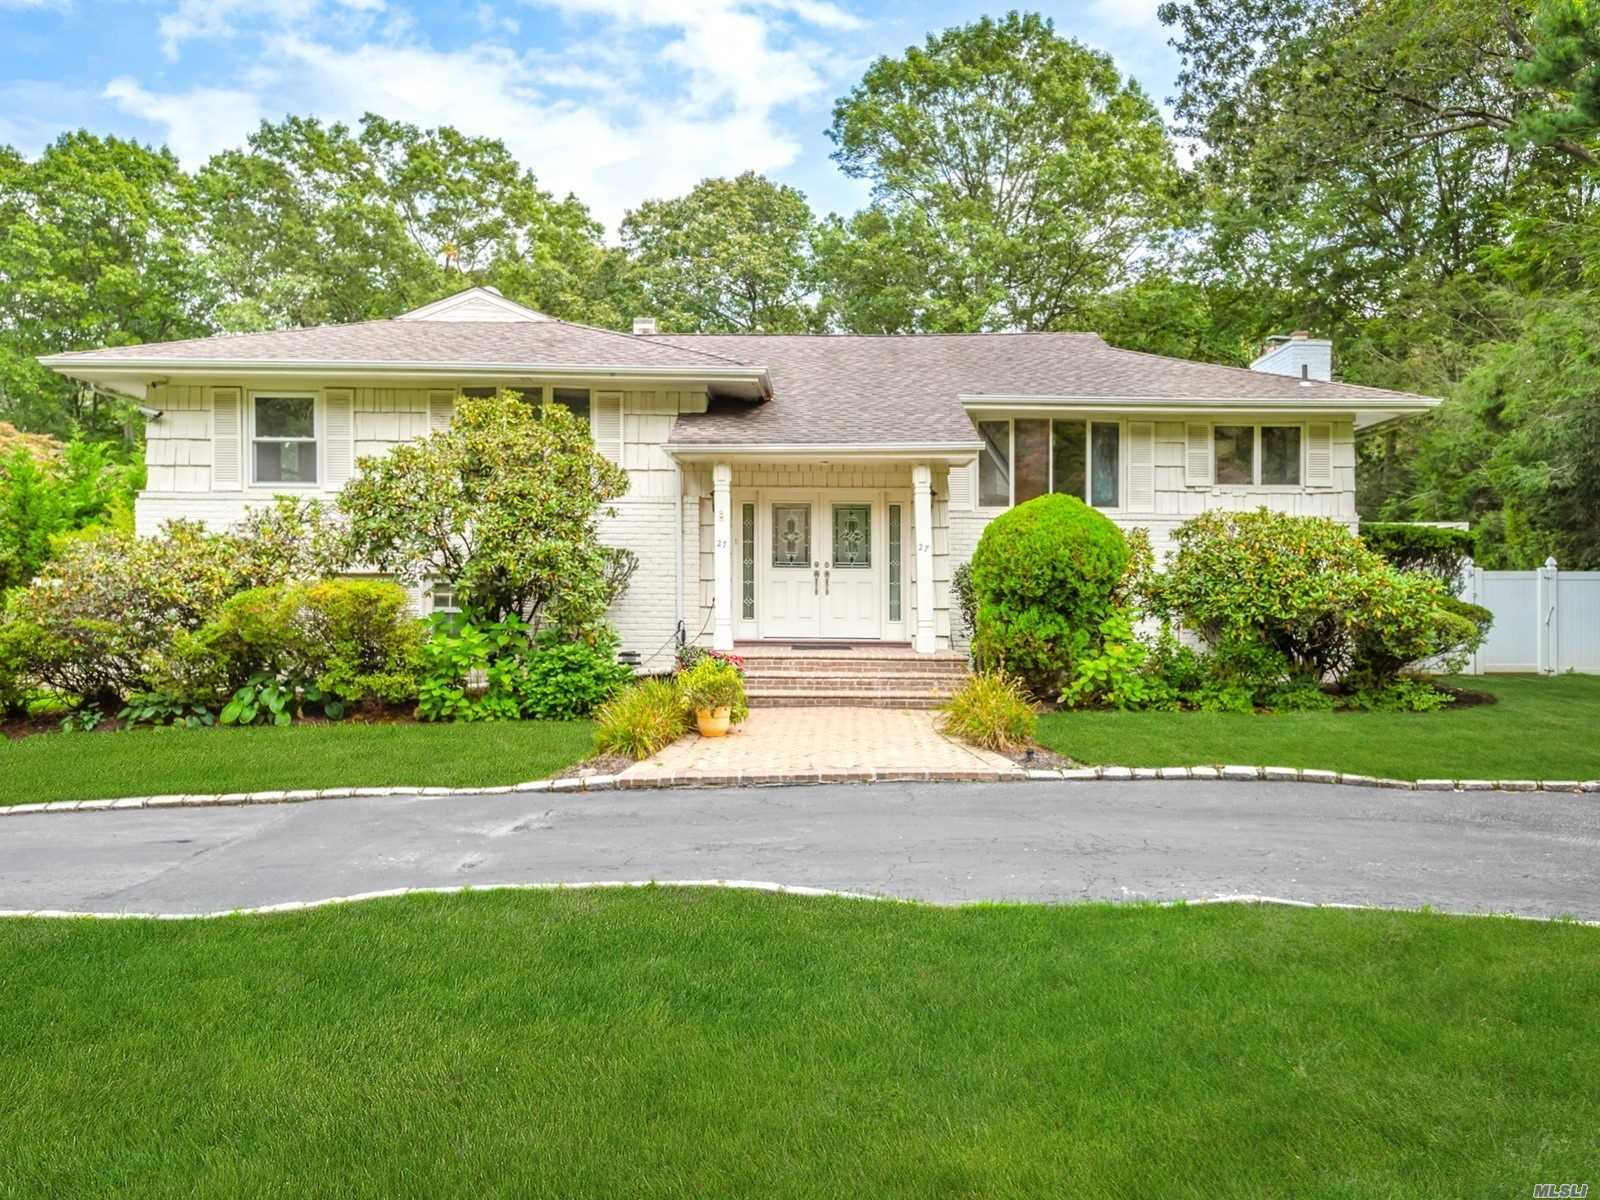 27 Beaumont Dr - Melville, New York